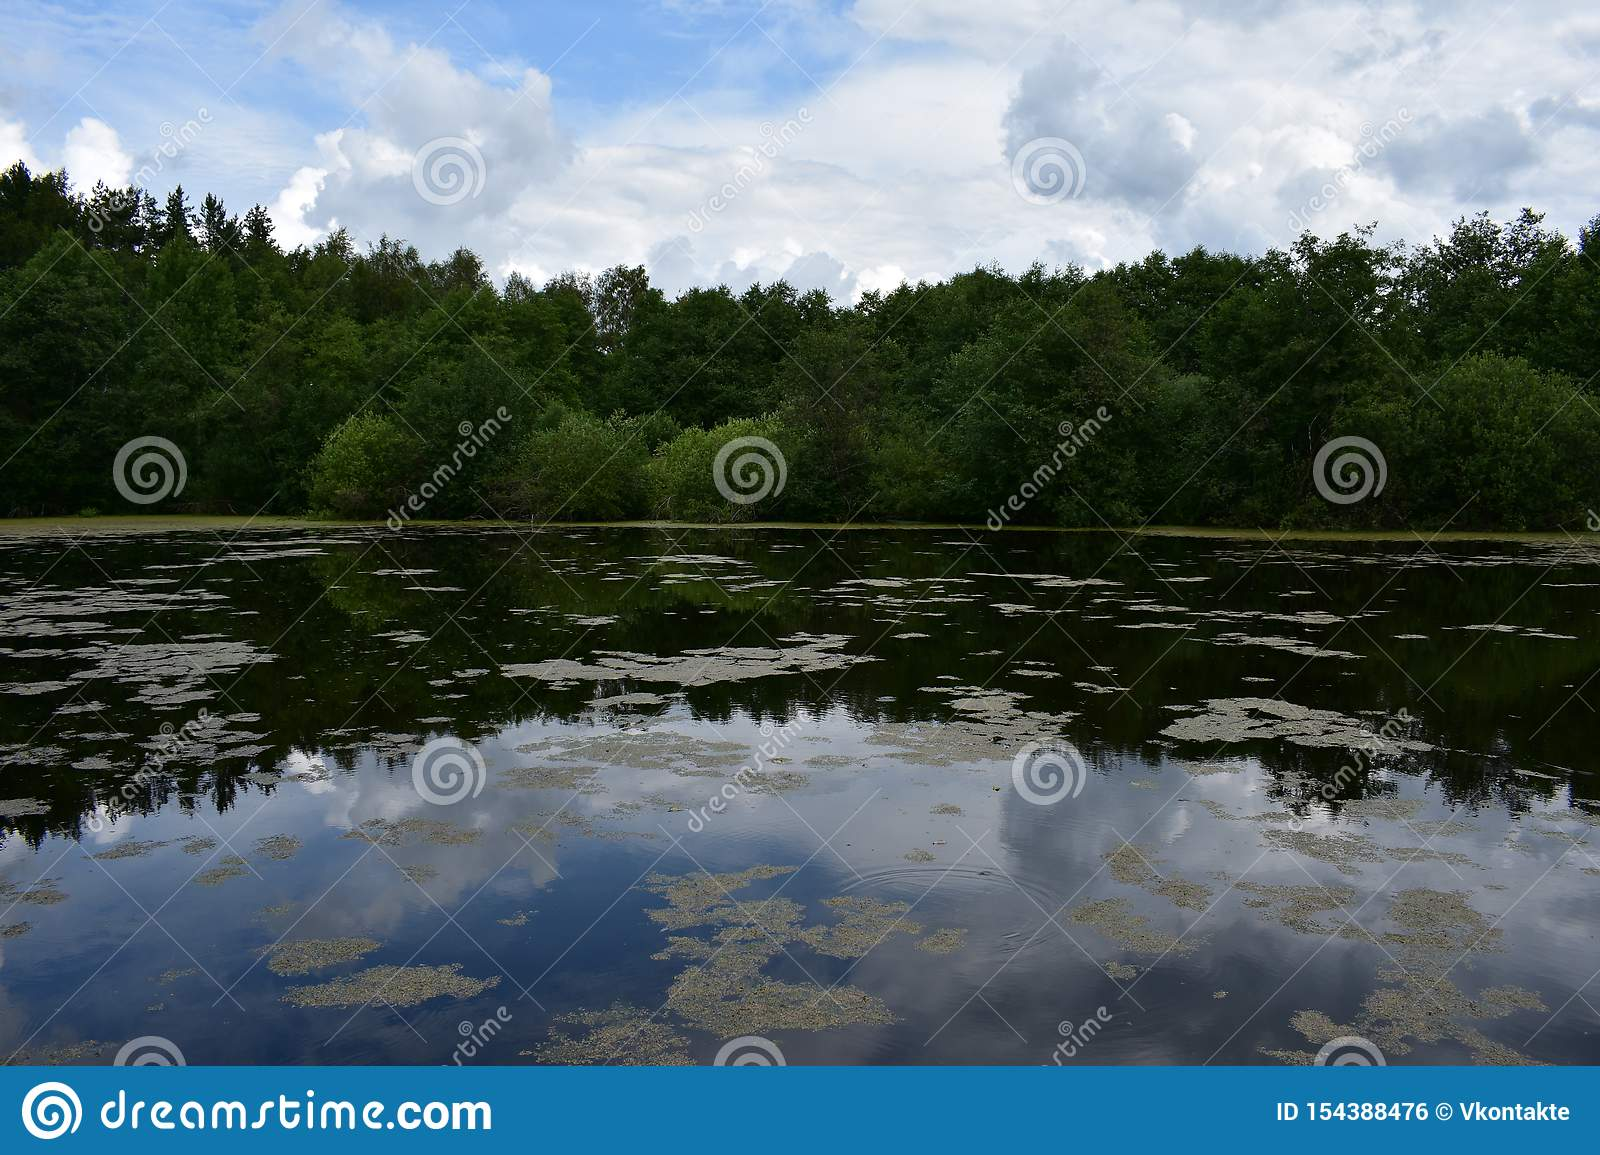 Clouds in the blue sky above the forest smooth pond lake reflected in the water, low bowed tree branches